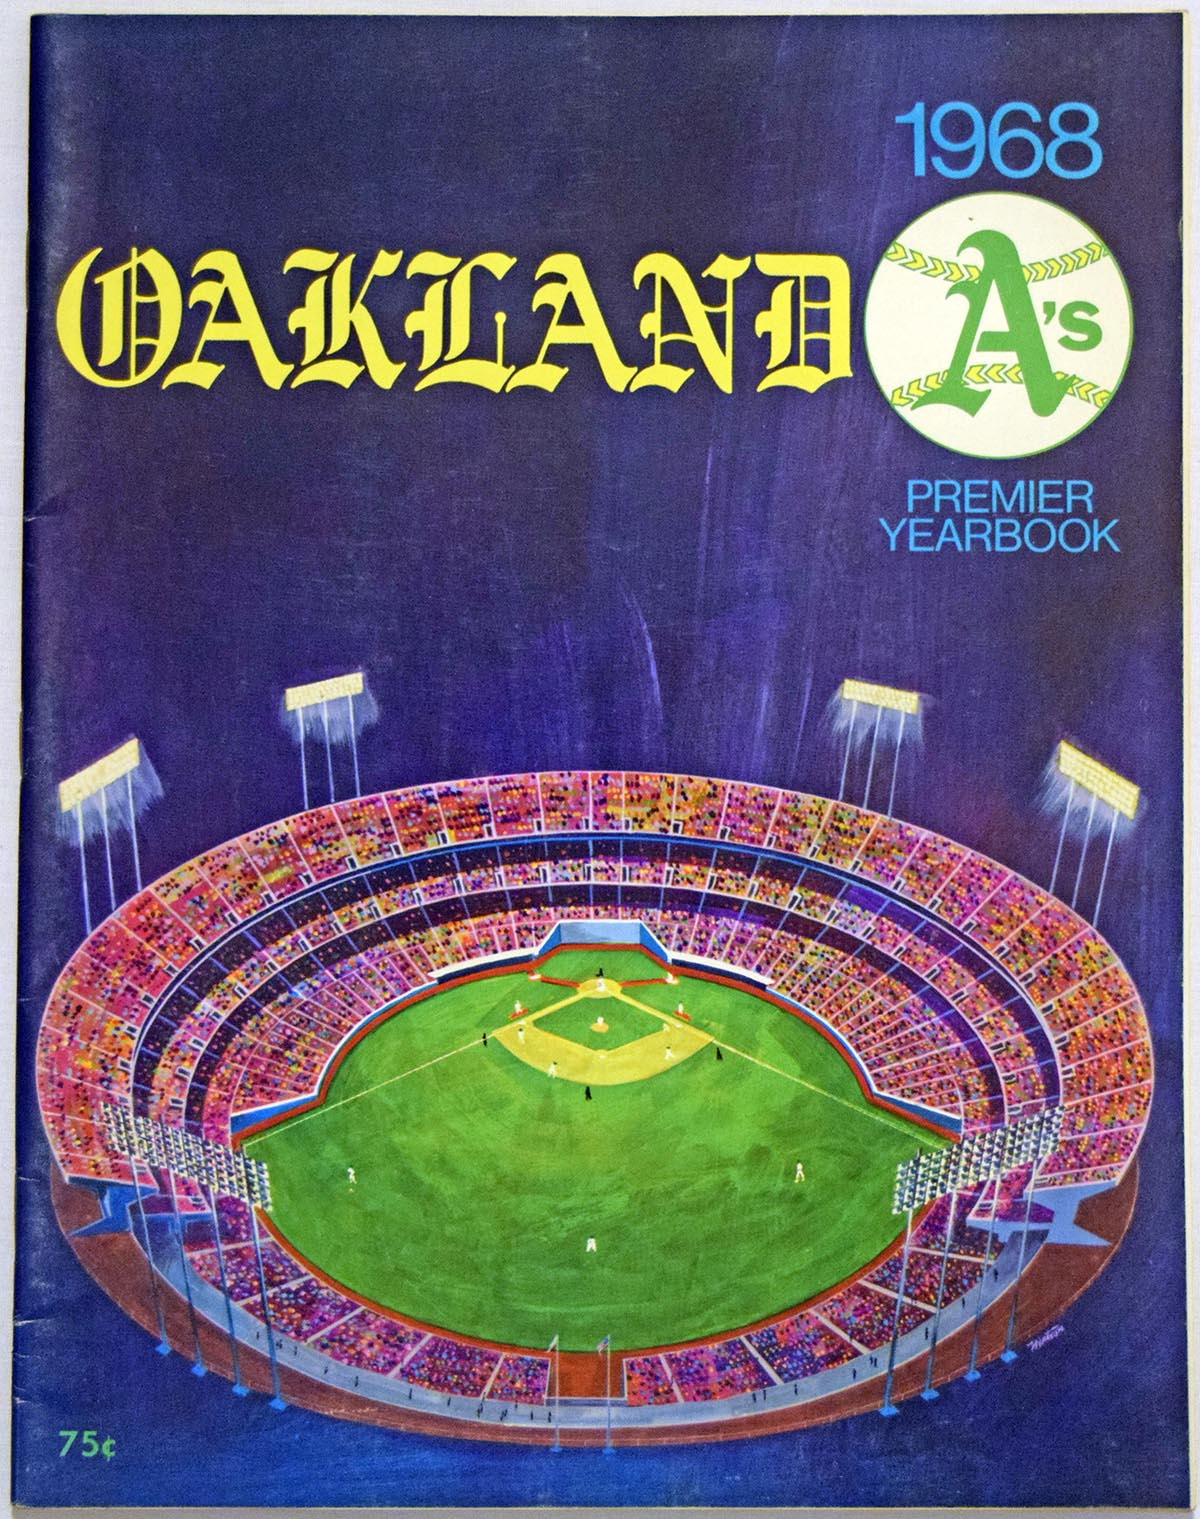 Lot #1759 1968 Yearbook  Oakland A's Cond: NM